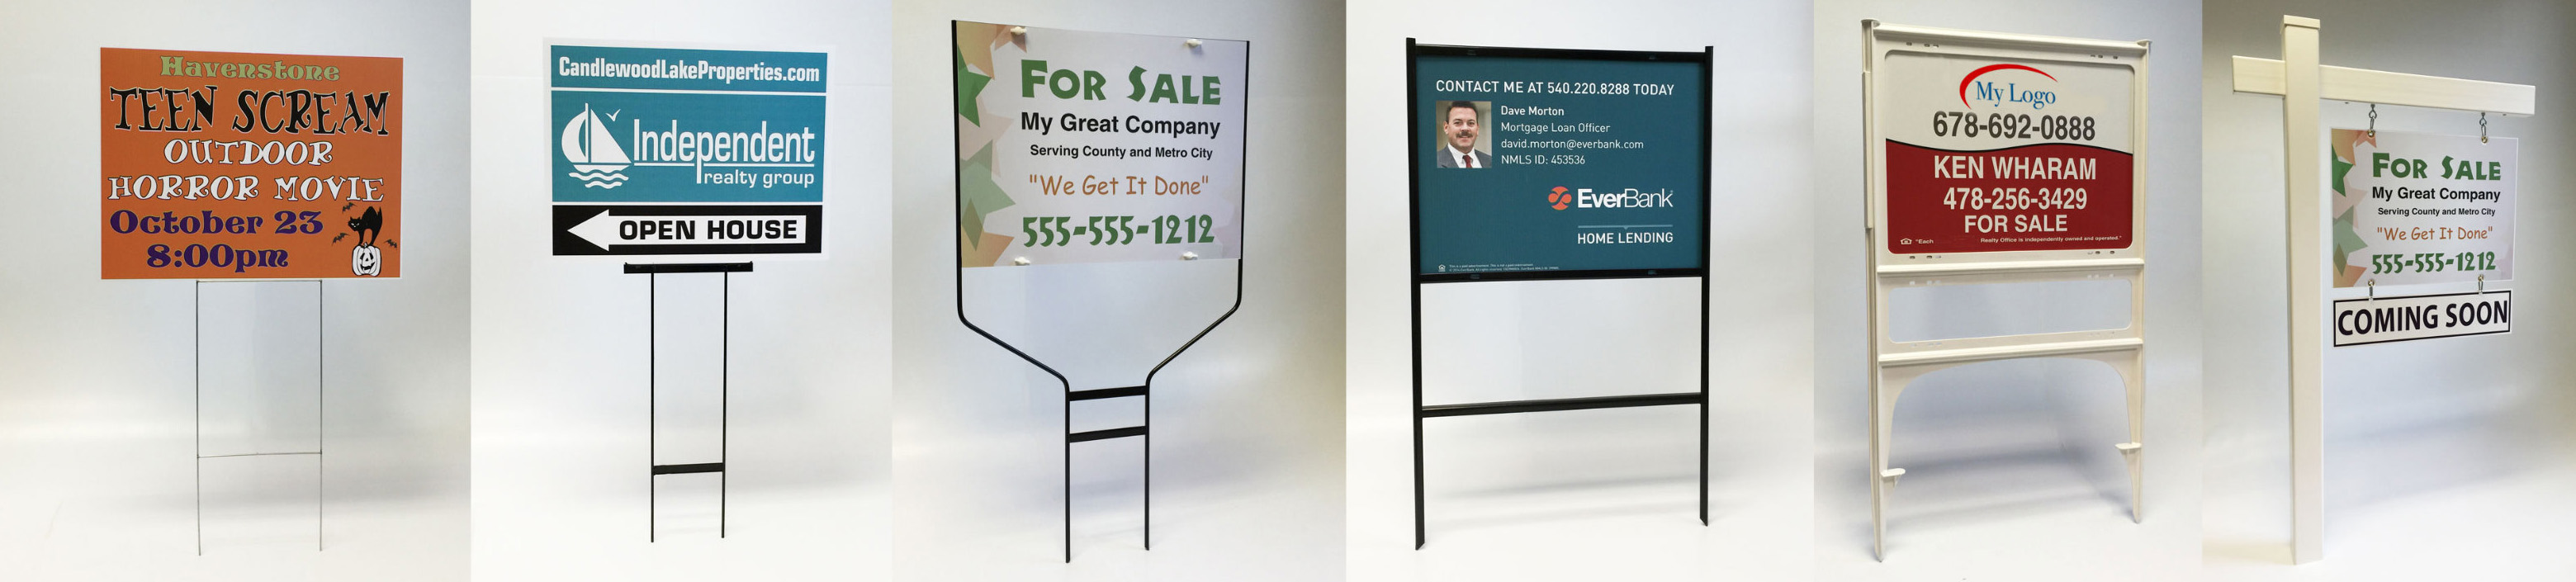 yard signs in frames image